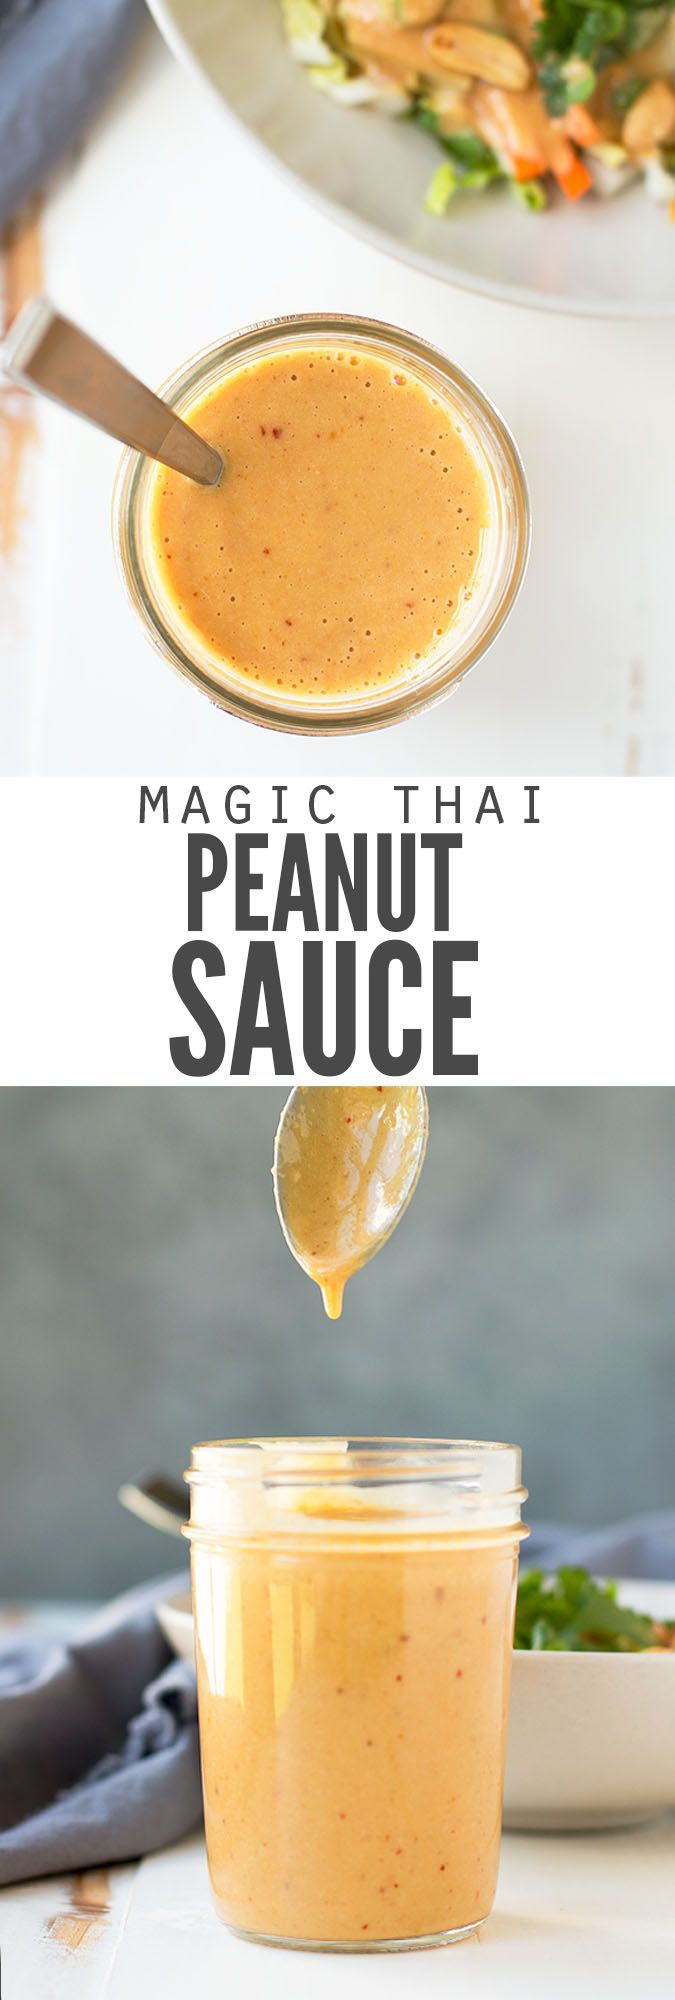 Peanut Sauce Ridiculously easy thai peanut sauce recipe that's slightly spicy, made in the blender and doubles as a dressing. Add to stir-fry, noodles, salads and satay! :: Ridiculously easy thai peanut sauce recipe that's slightly spicy, made in the blender and doubles as a dressing. Add to stir-fry, noodles, salads and satay! ::